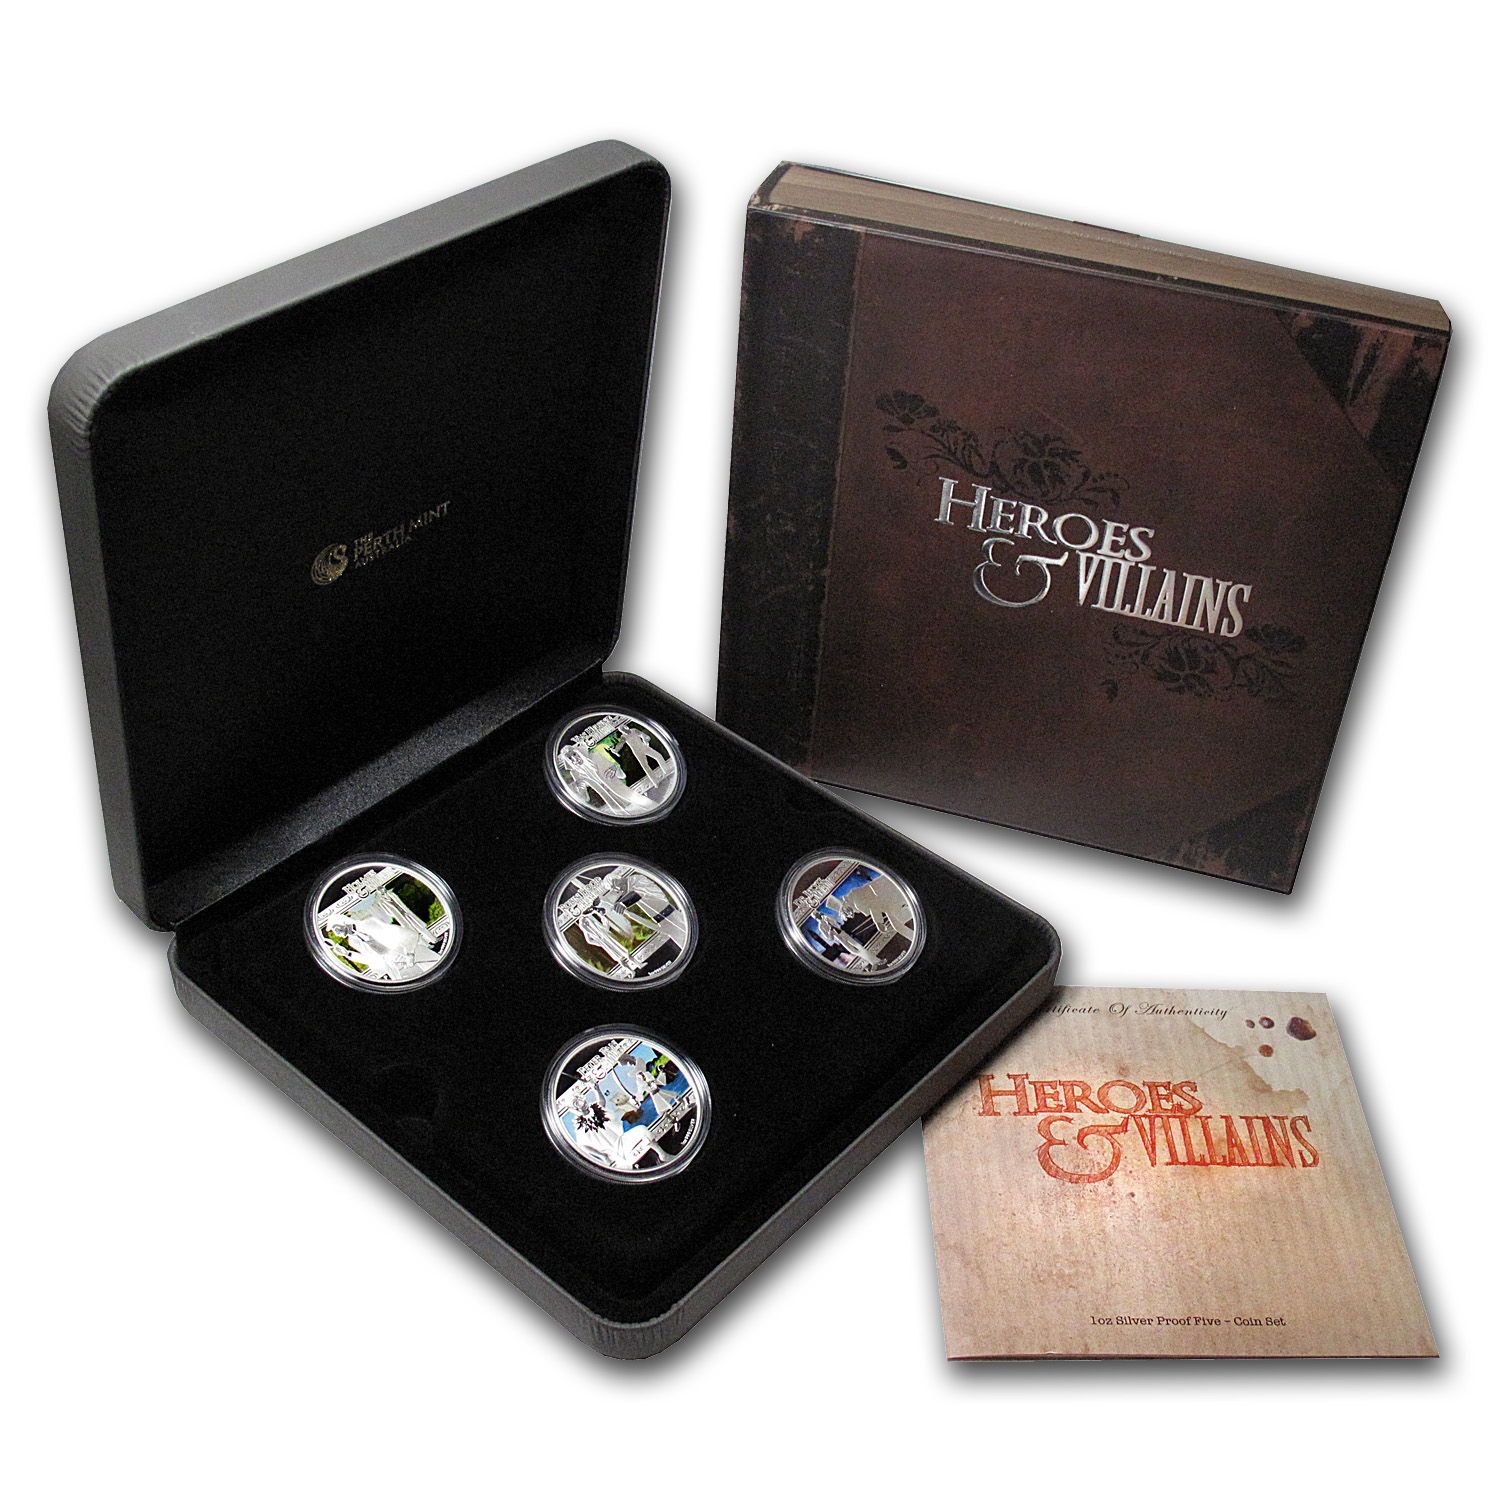 2011 5-Coin 1 oz Silver Heroes and Villains Proof Set